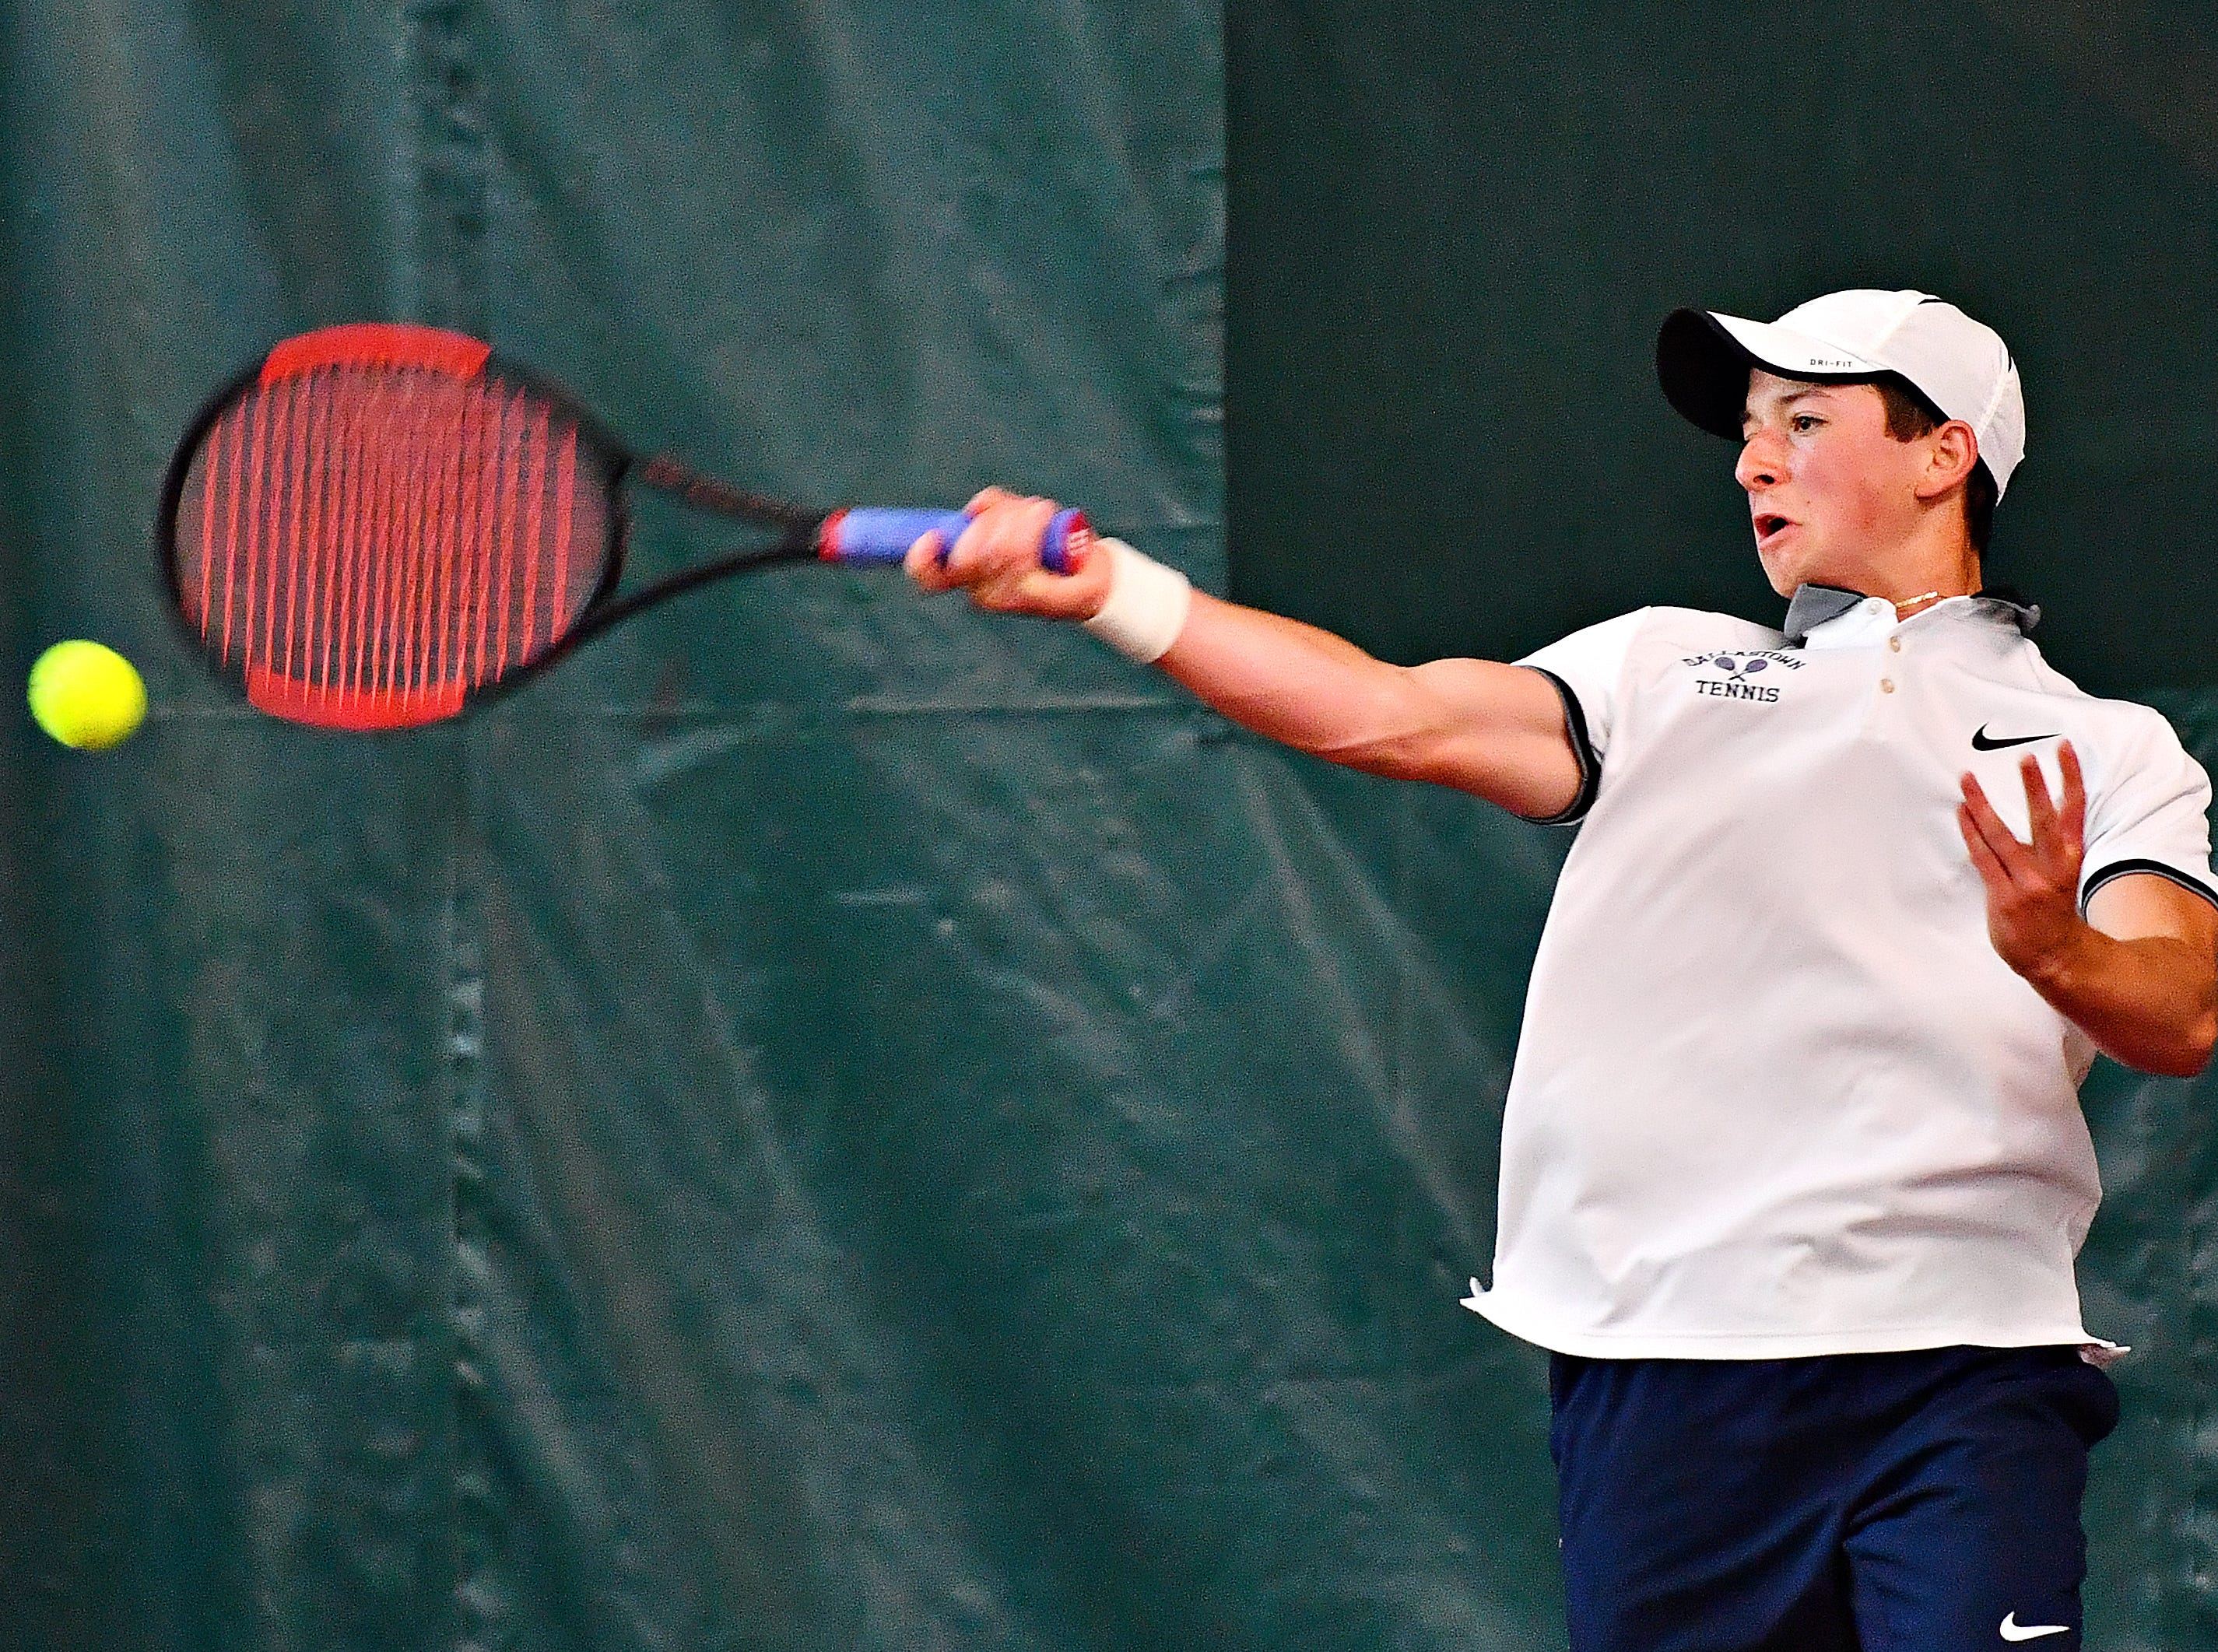 Dallastown's Jonathan Burns returns the ball to Hershey's Andy Chen during District III, Class 3-A boys' tennis team championship action at Hershey Raquet Club in Hershey, Thursday, May 9, 2019. Chen would win the match and Hershey would win the title. Dawn J. Sagert photo